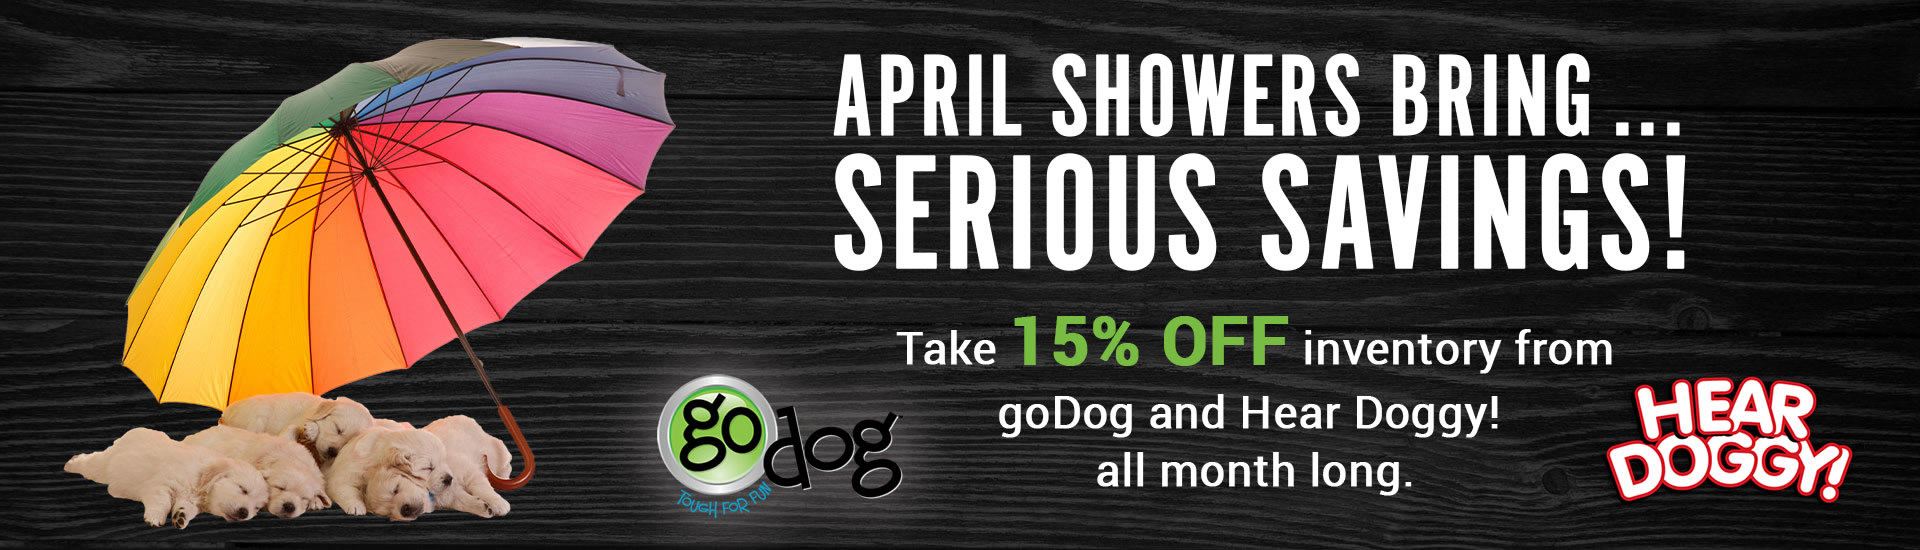 Take 15% off inventory from goDog and Hear Doggy! all month long.